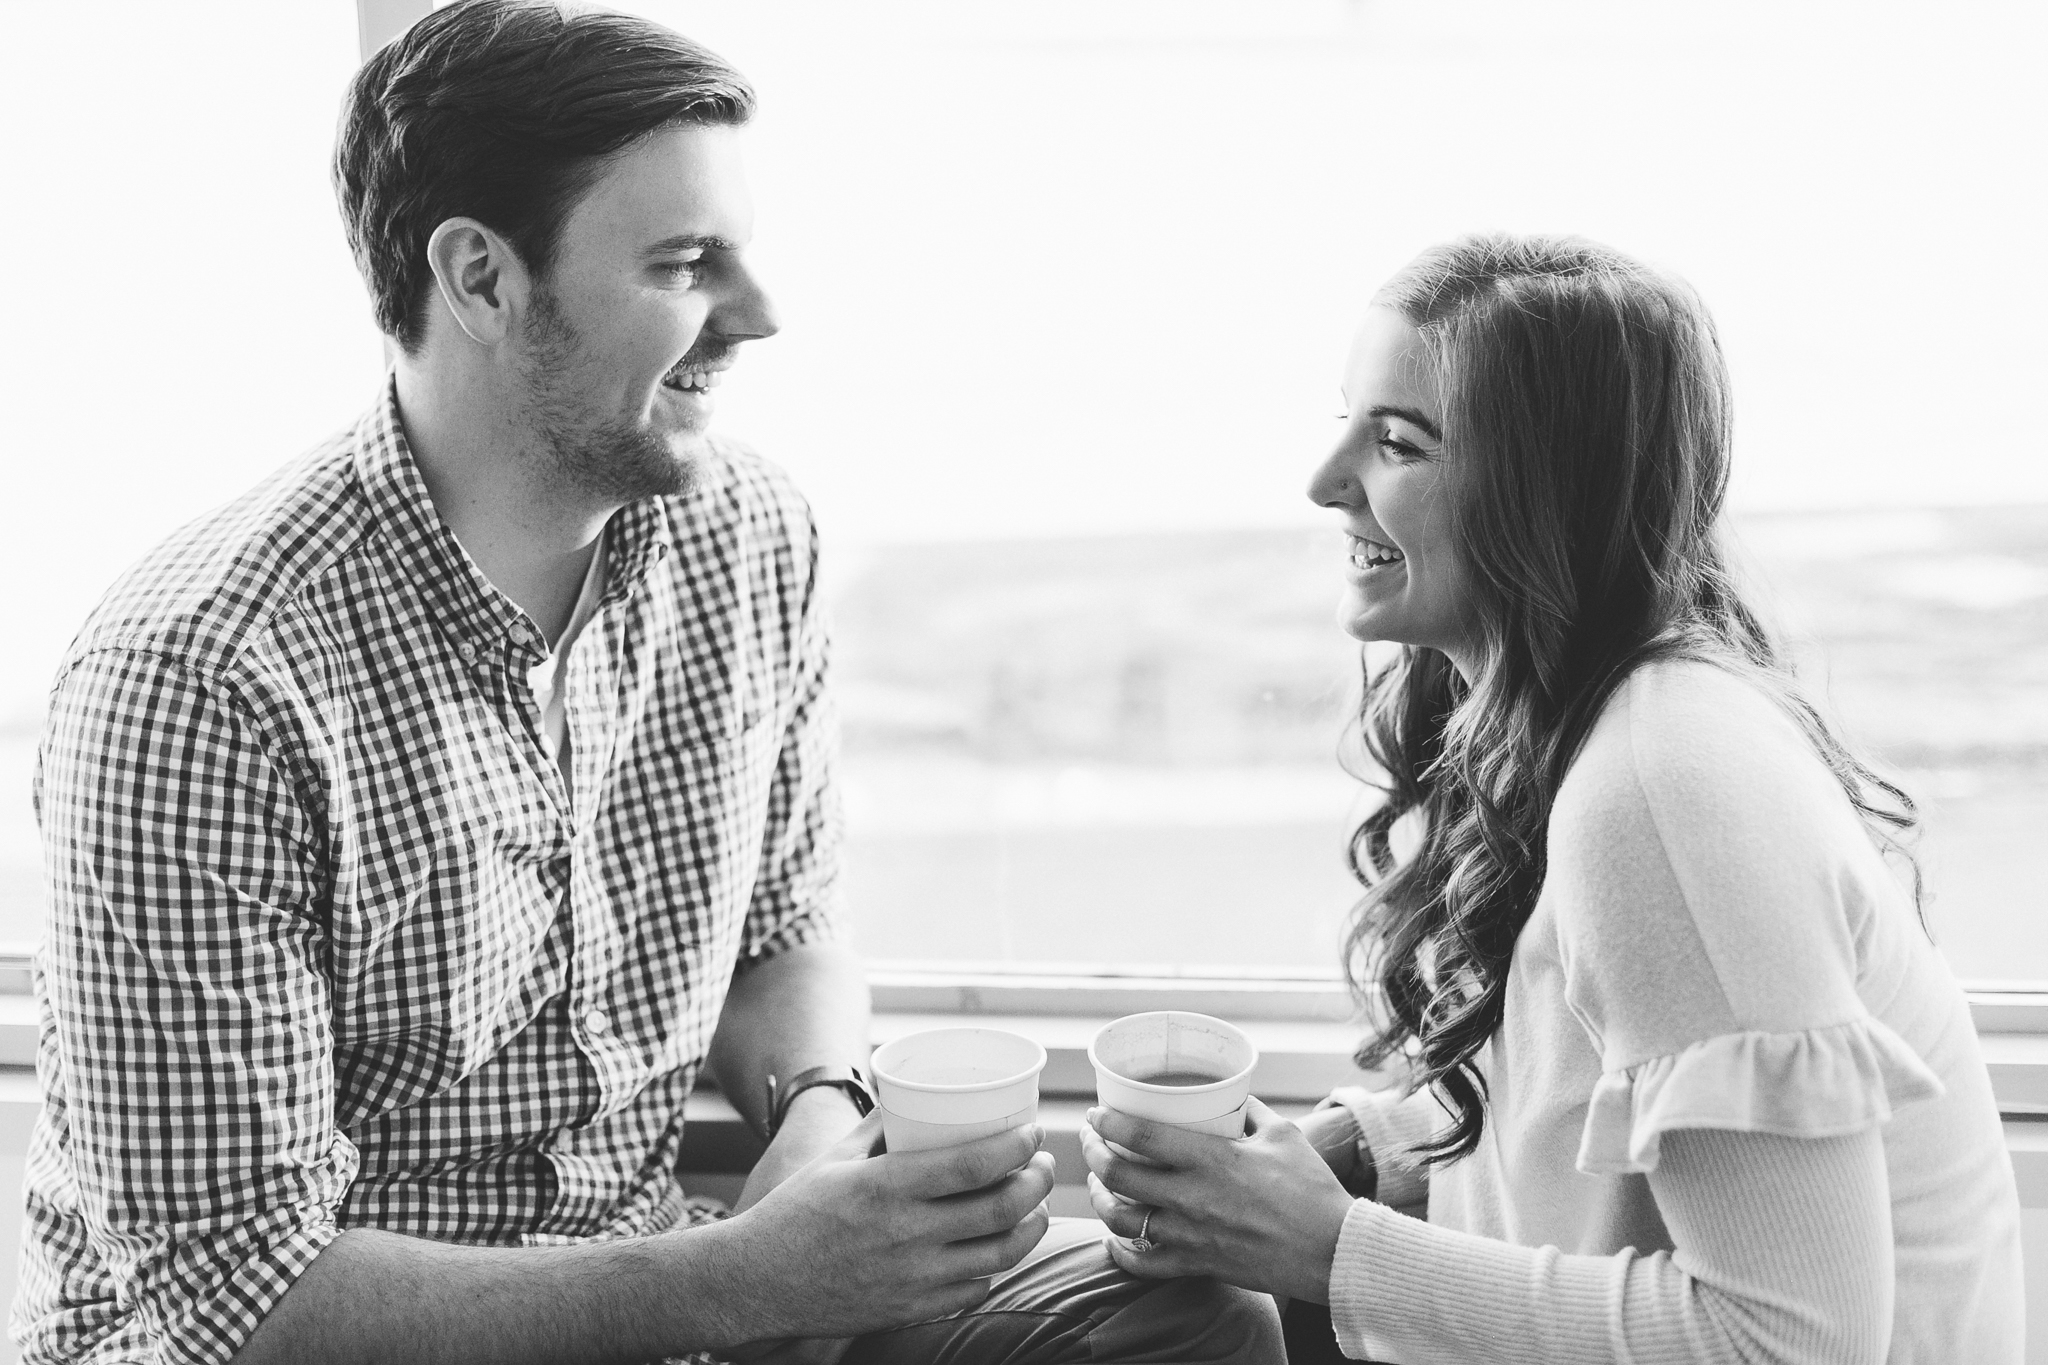 lethbridge-photographer-love-and-be-loved-photography-jonny-bean-coffee-shop-emma-tanner-engagement-picture-image-photo-30.jpg